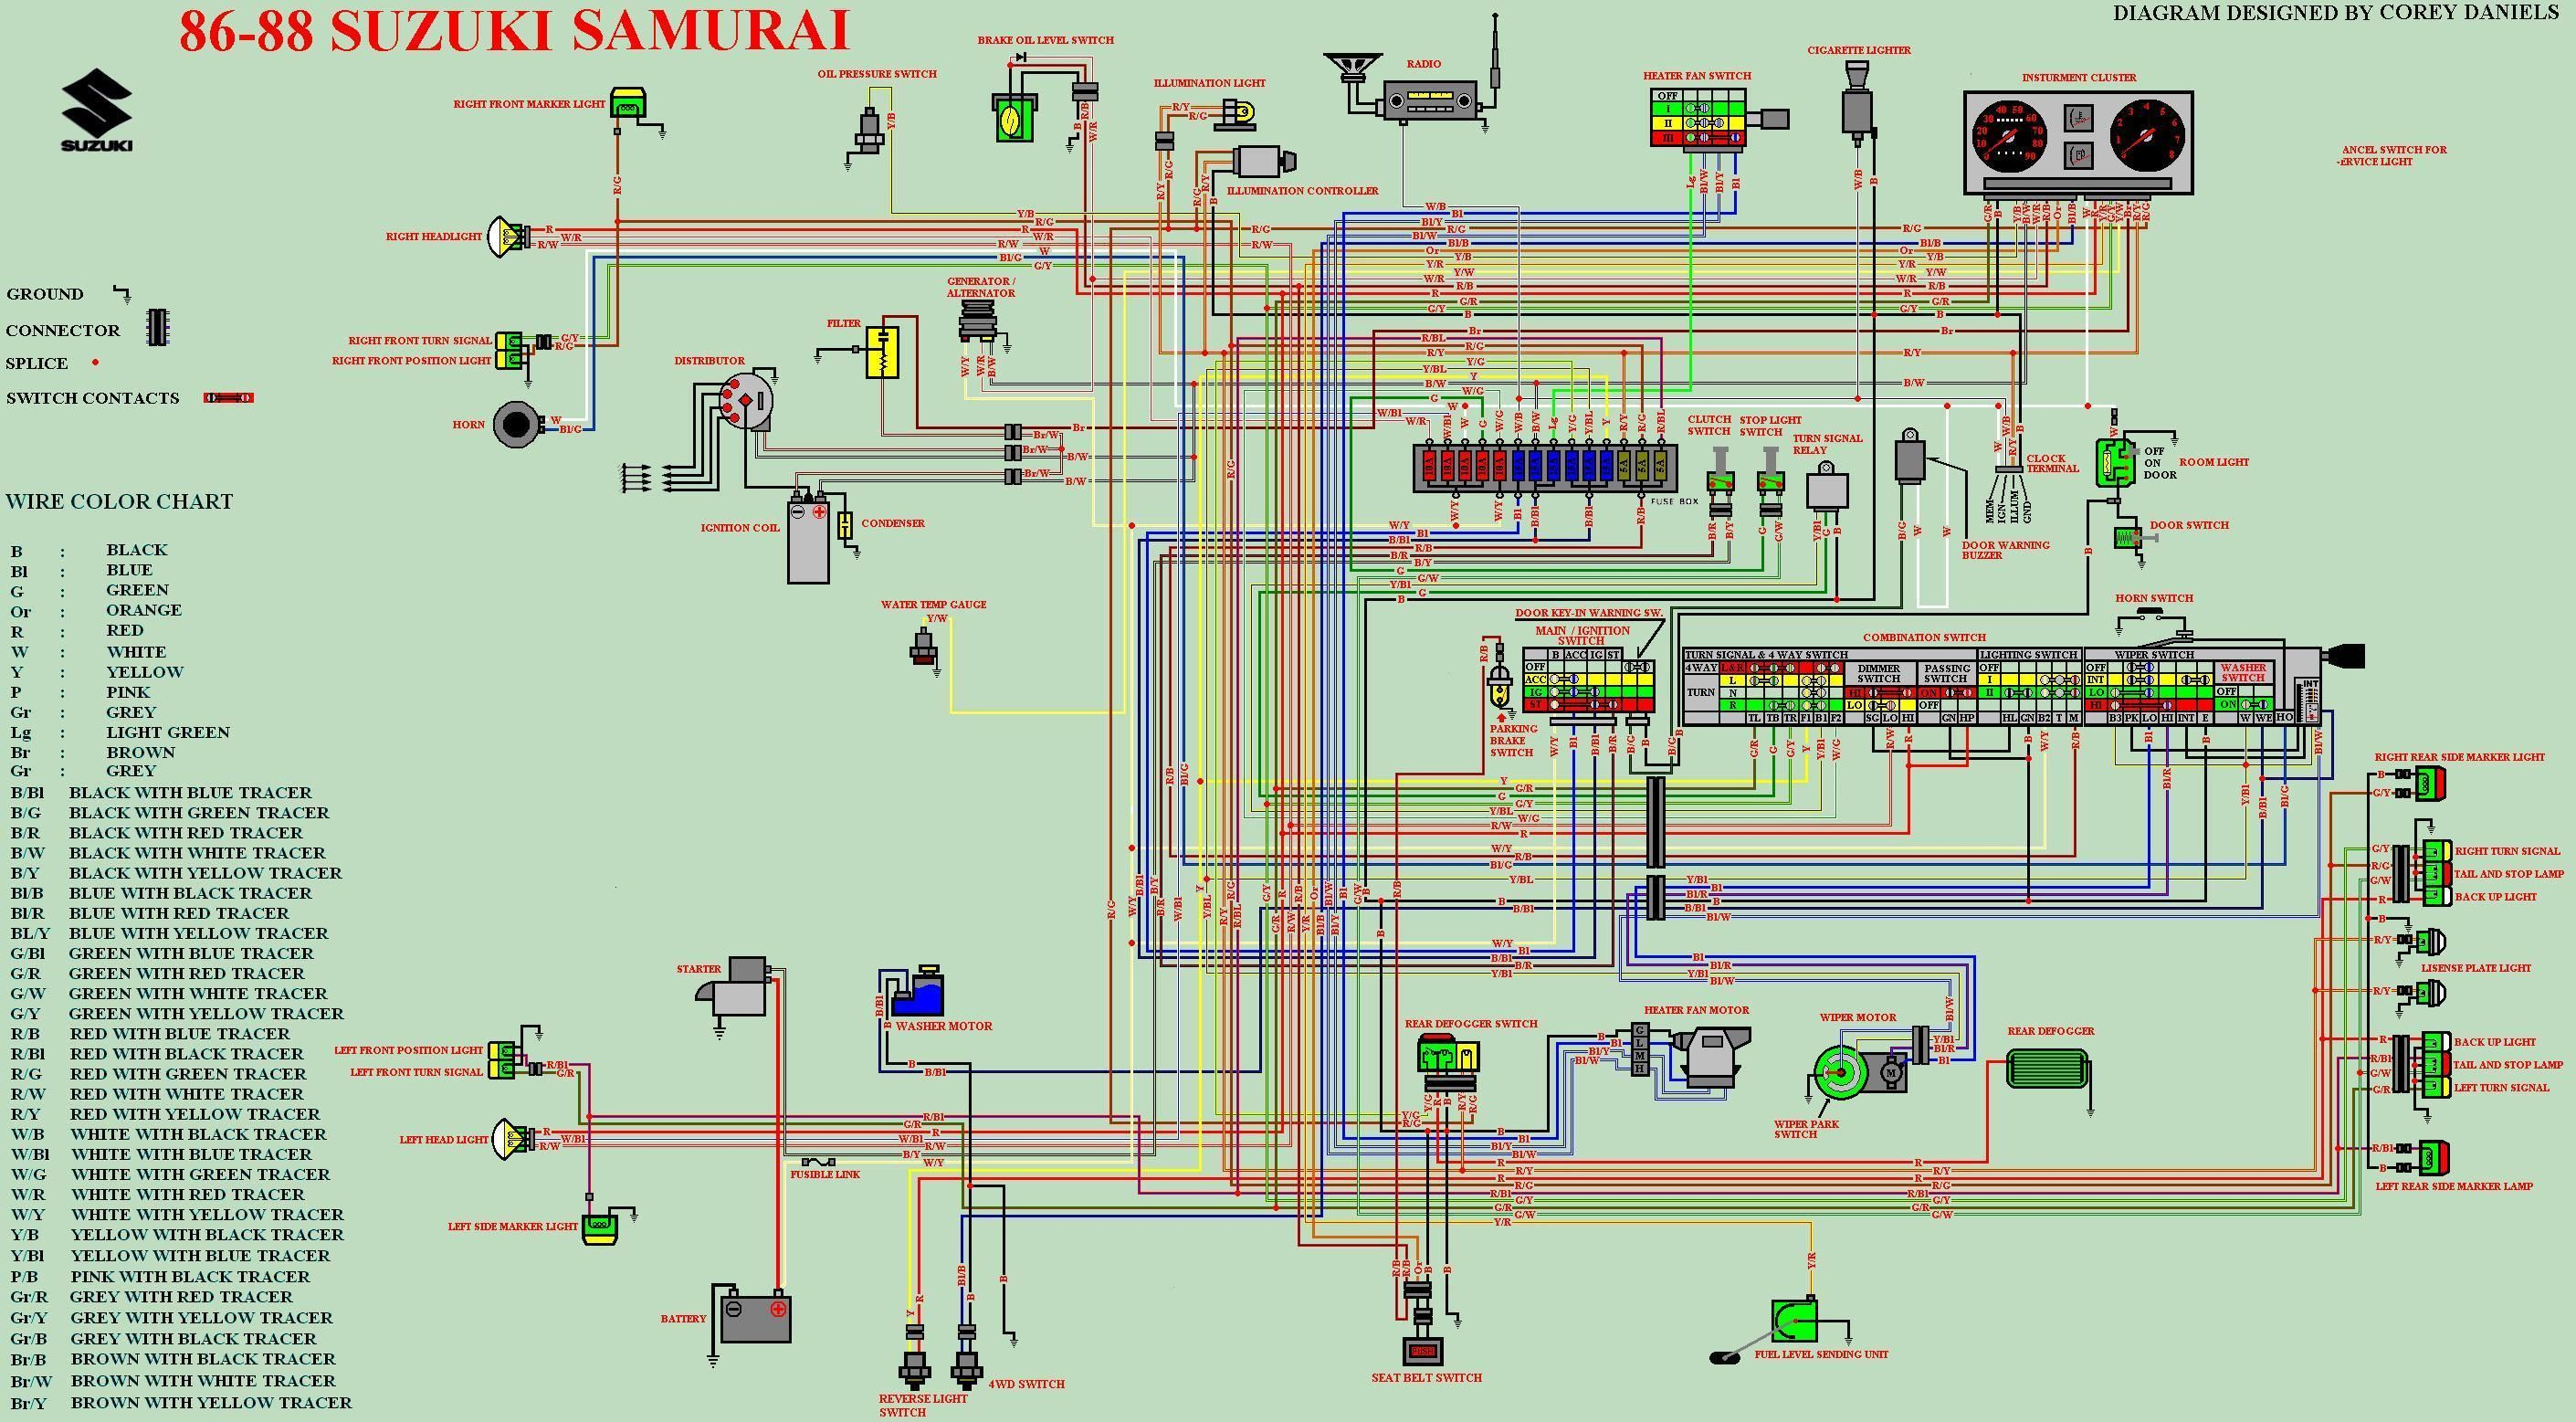 samurai schematics for running without stock hitachi ... wiring diagram for 1988 suzuki samurai